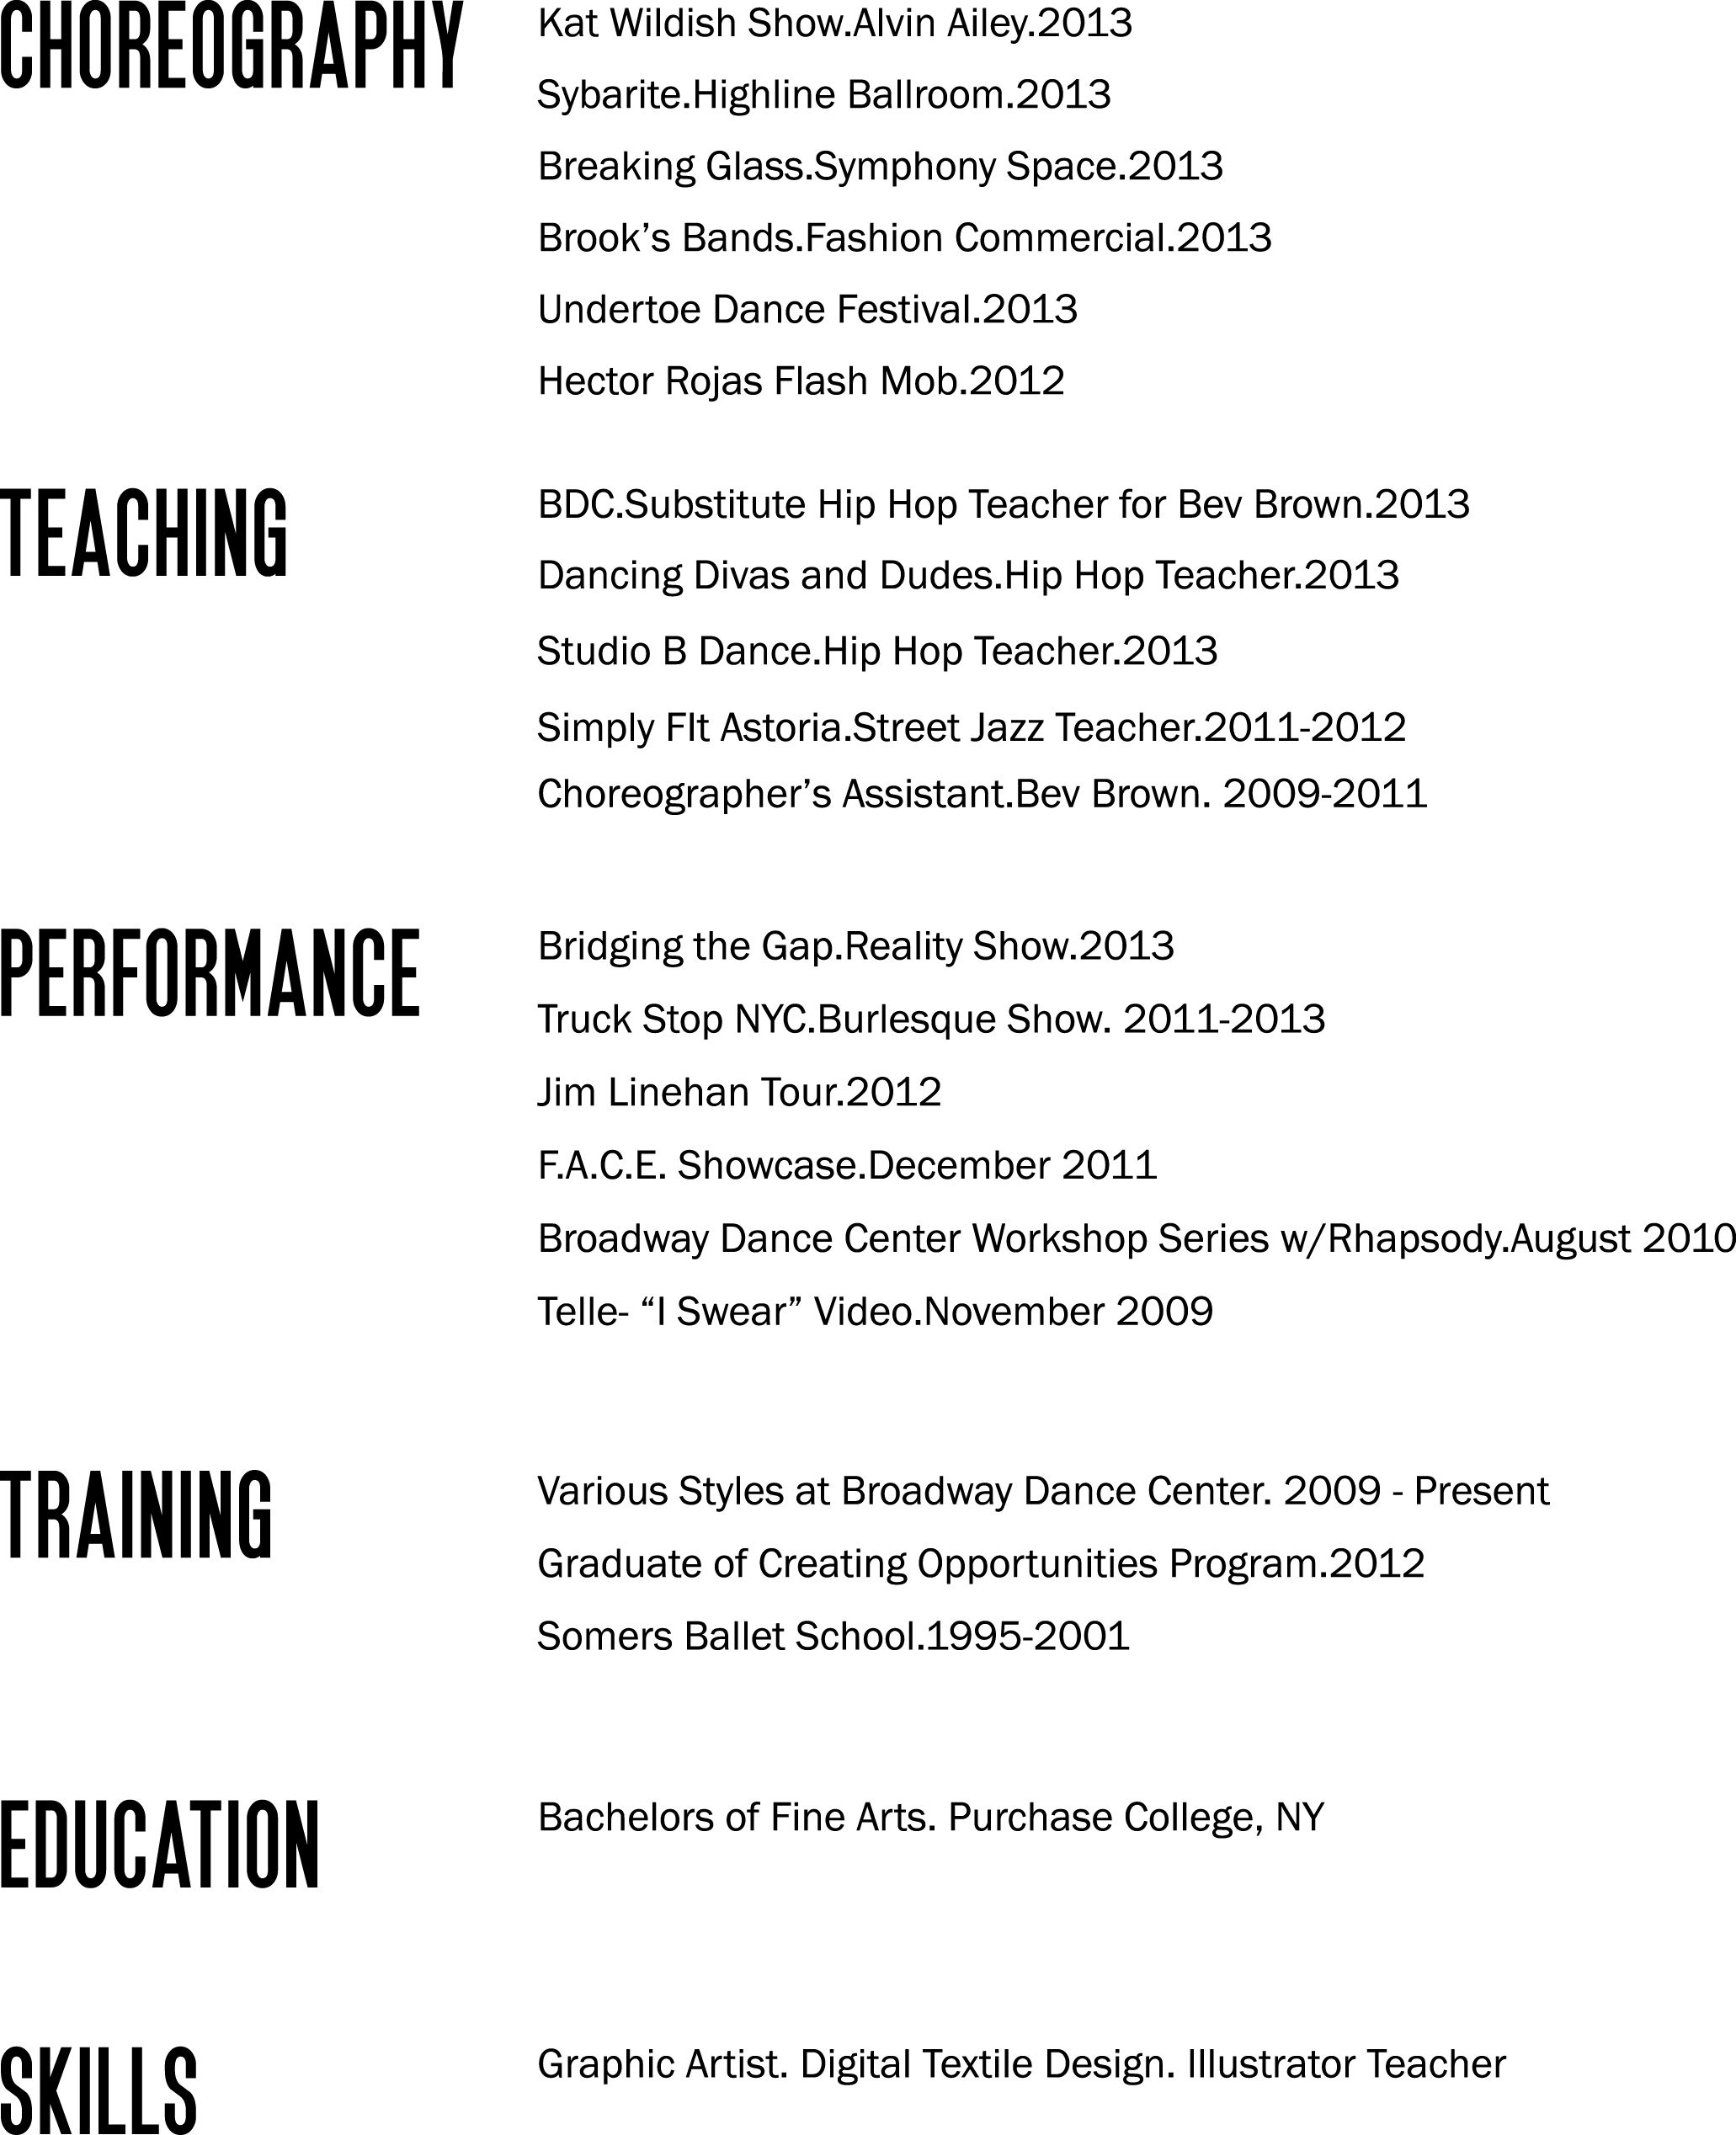 Bad Layout, But Good Reminder Of What To Put On A Dance Resume, And  Things To Put On A Resume